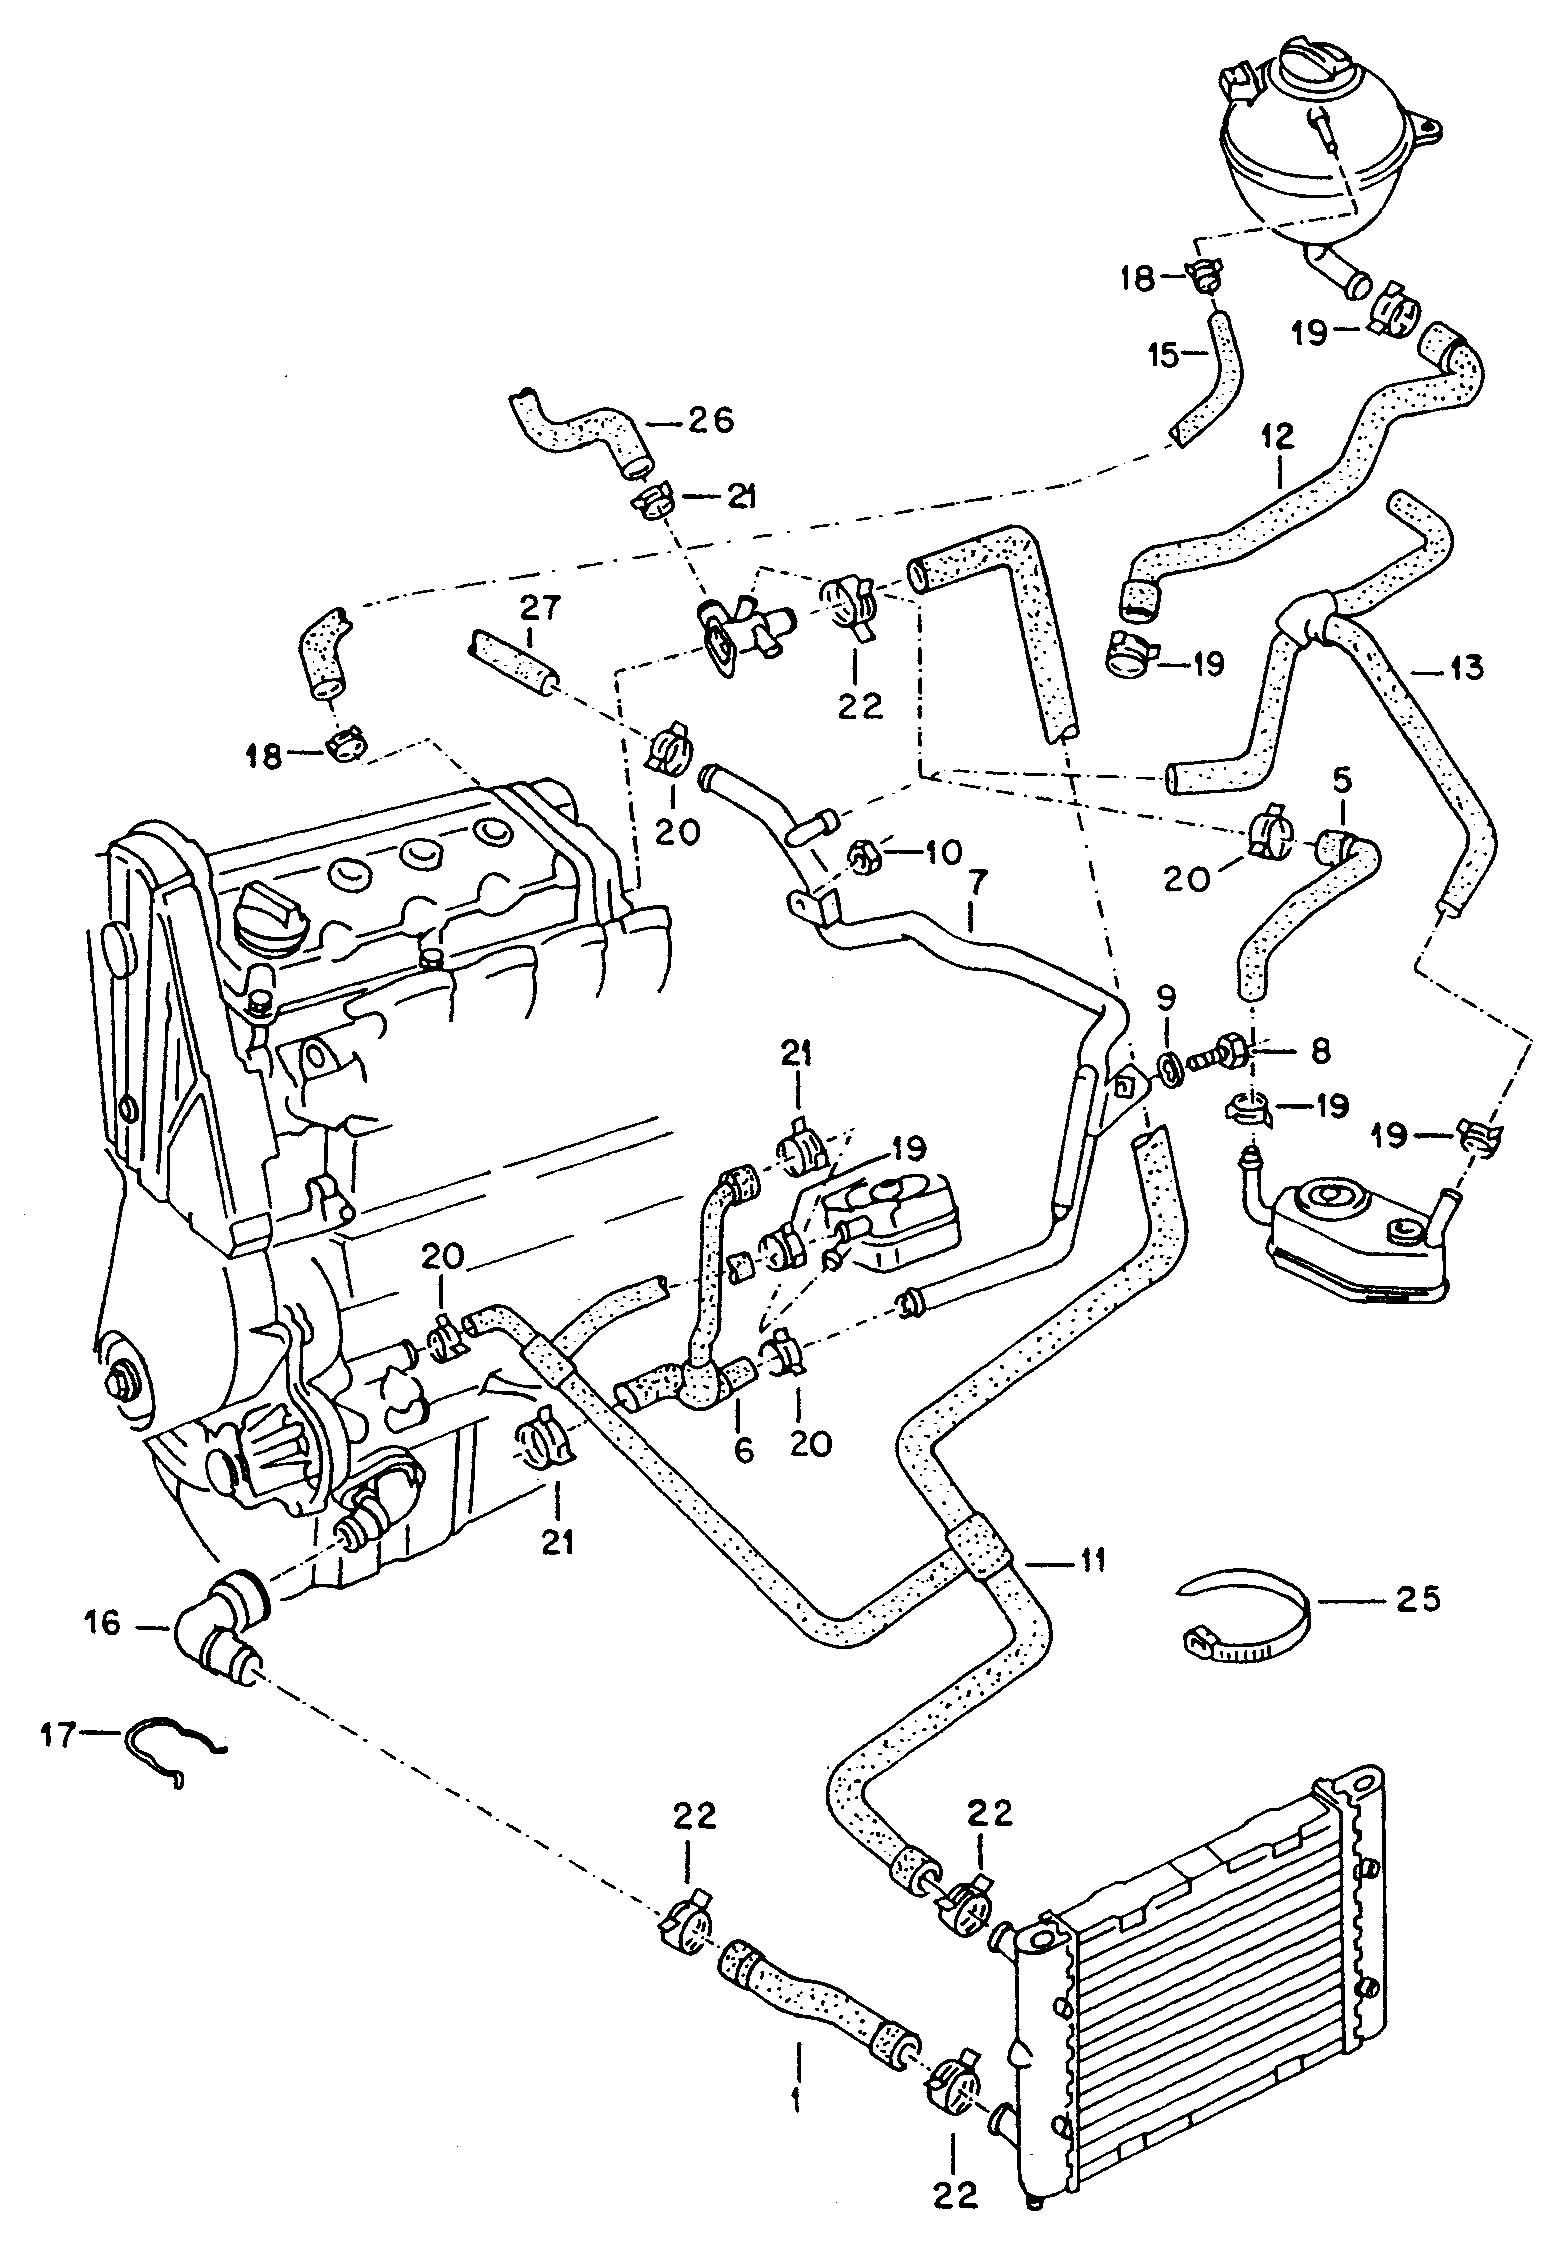 Polaris Gem Parts Diagram Wiring Schematic